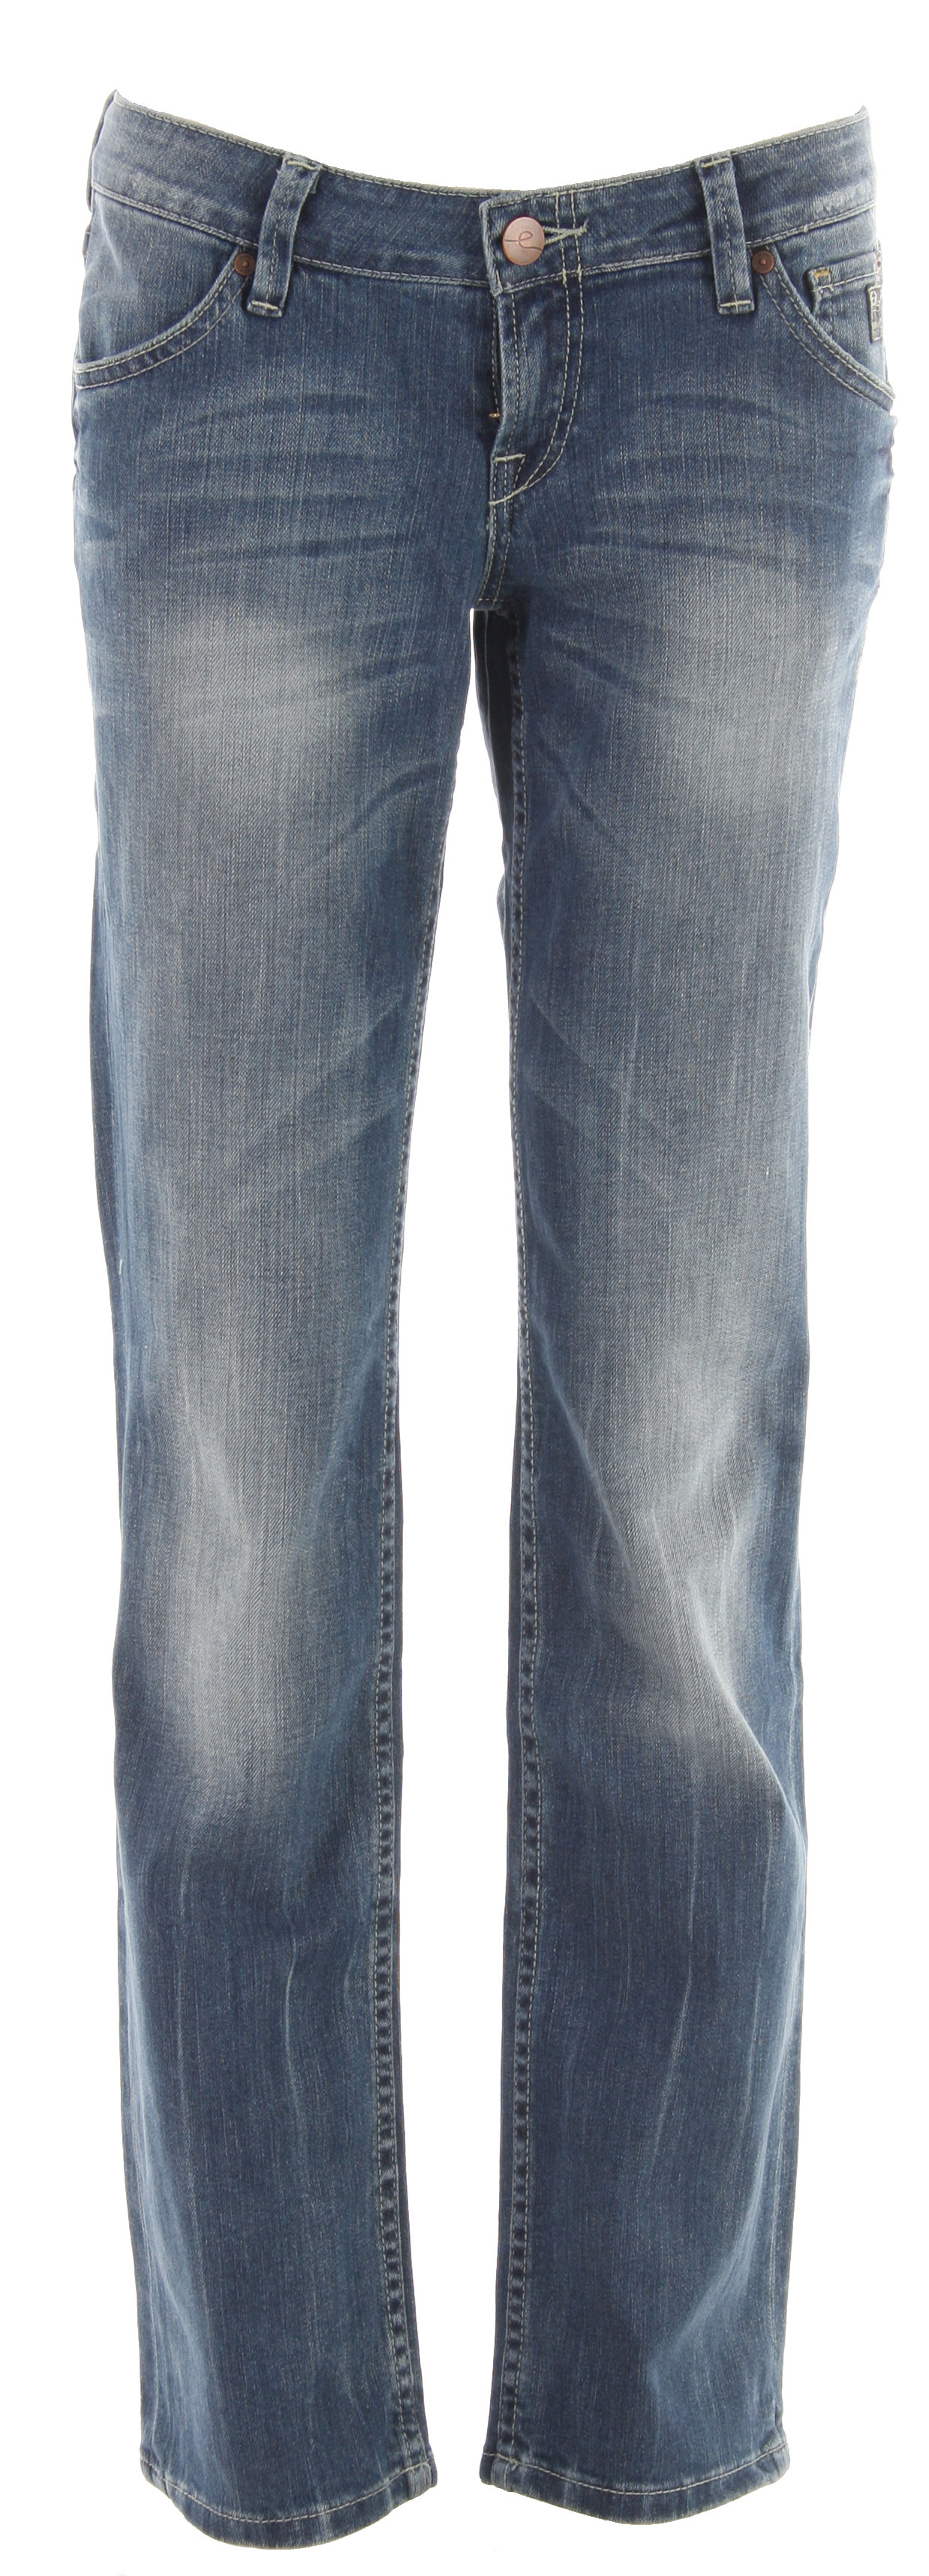 The Planet Earth Straight Cut Stone Wash Jean will become your favorite pair of pants in your wardrobe thanks to its useful features. These jeans are adjustable to your body figure given its organic cotton and spandex material. In addition, it comes with a standard zip fly and button closure. These are perfect for everyday wear due to its soft fabrics and versatility. Complete any stylish outfit by pairing these cute jeans with countless tops and footwear.Key Features of the Planet Earth Straight Cut Stone Wash Jean: Zip Fly Button Closure 20% Organic Cotton/78% Cotton/2% Spandex - $31.95